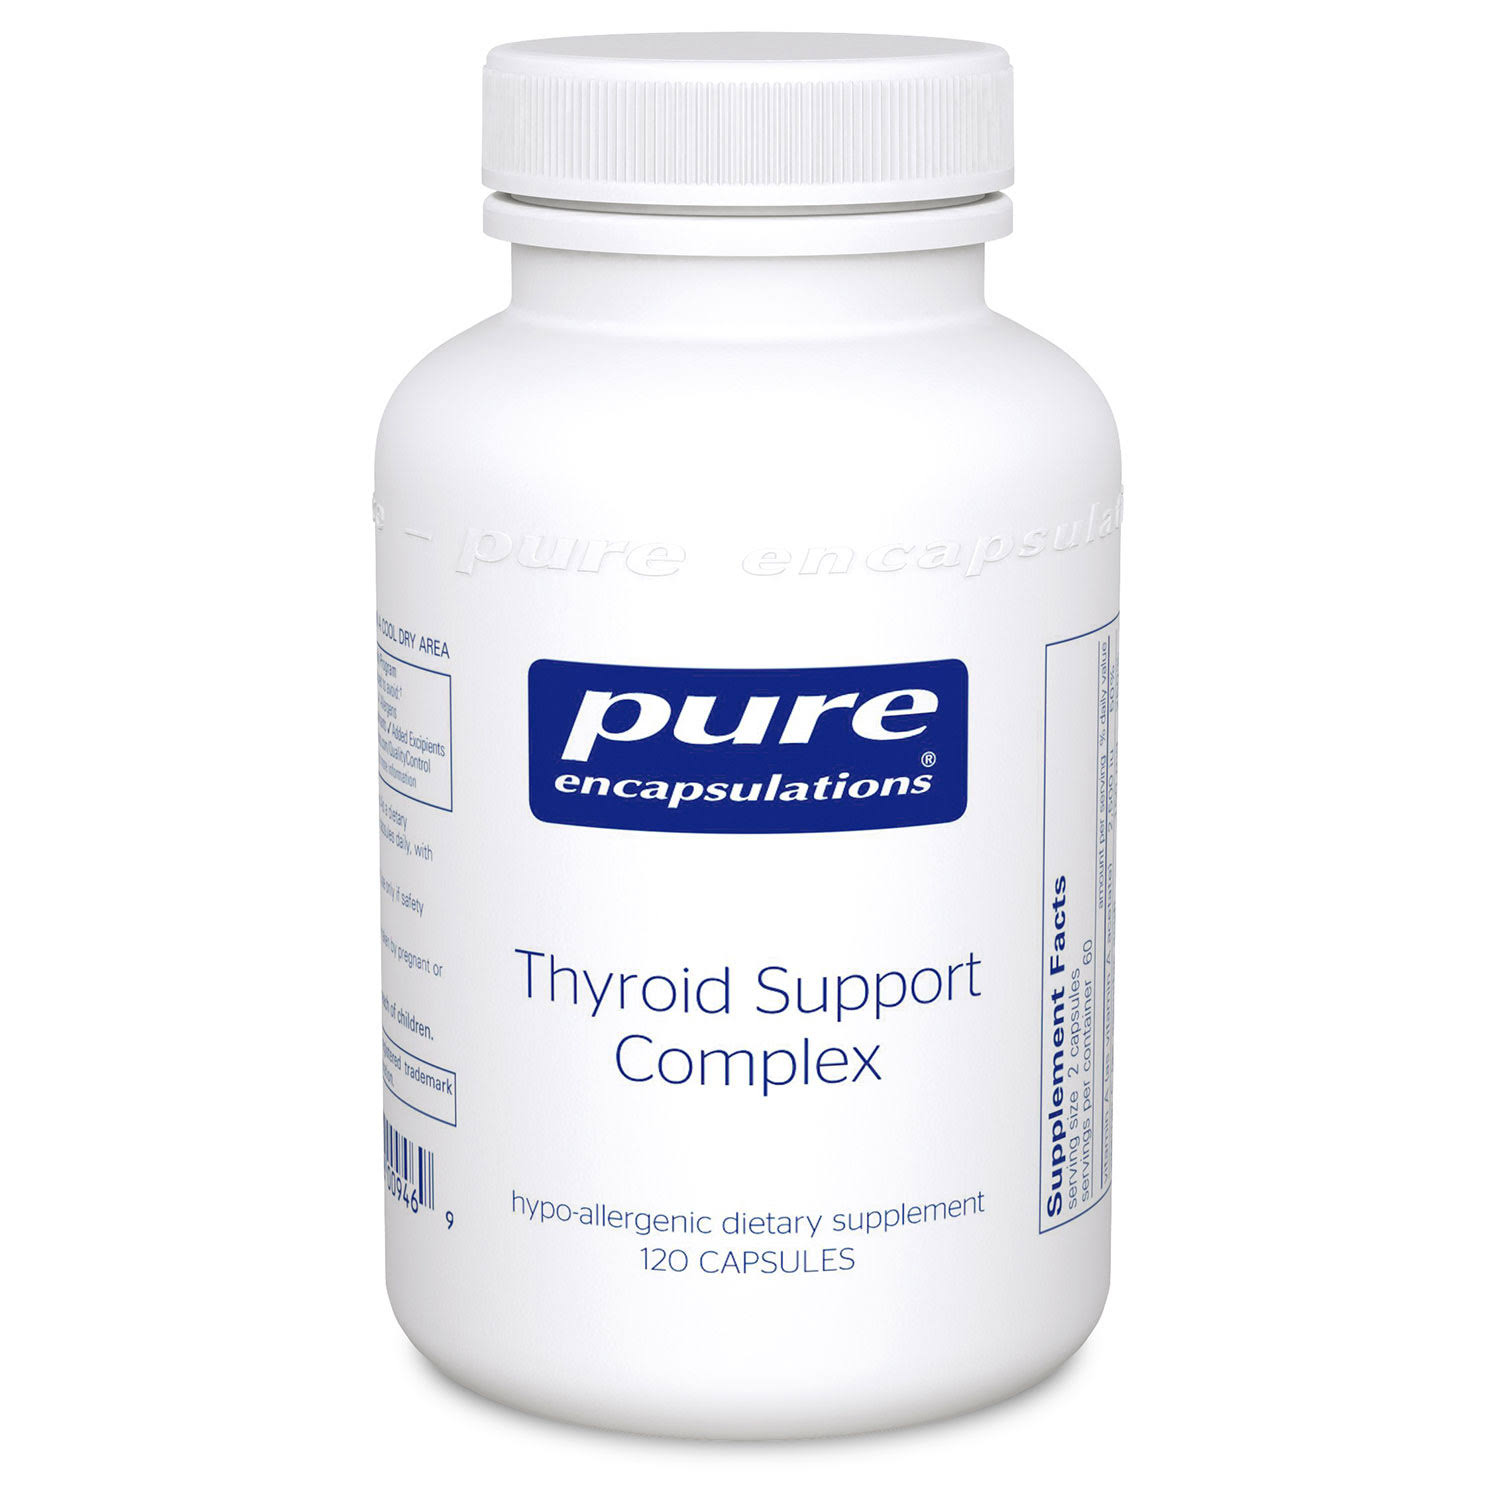 Pure Encapsulations - Thyroid Support Complex - 120 Capsules